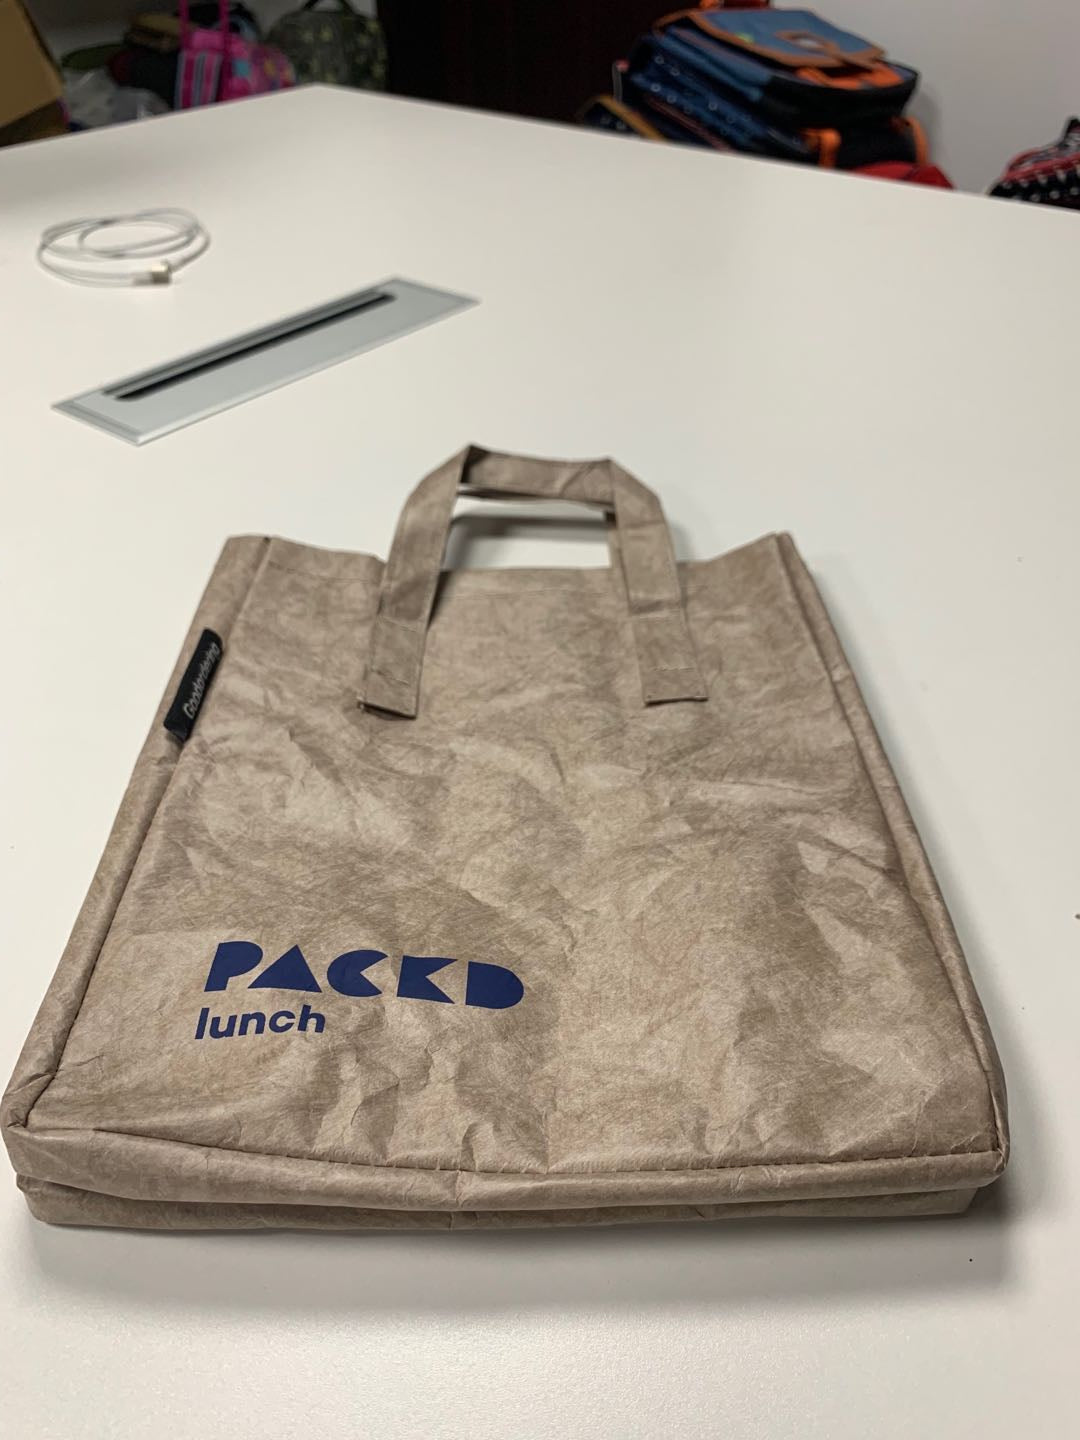 Packd Lunch re-usable lunch bag by Goodordering